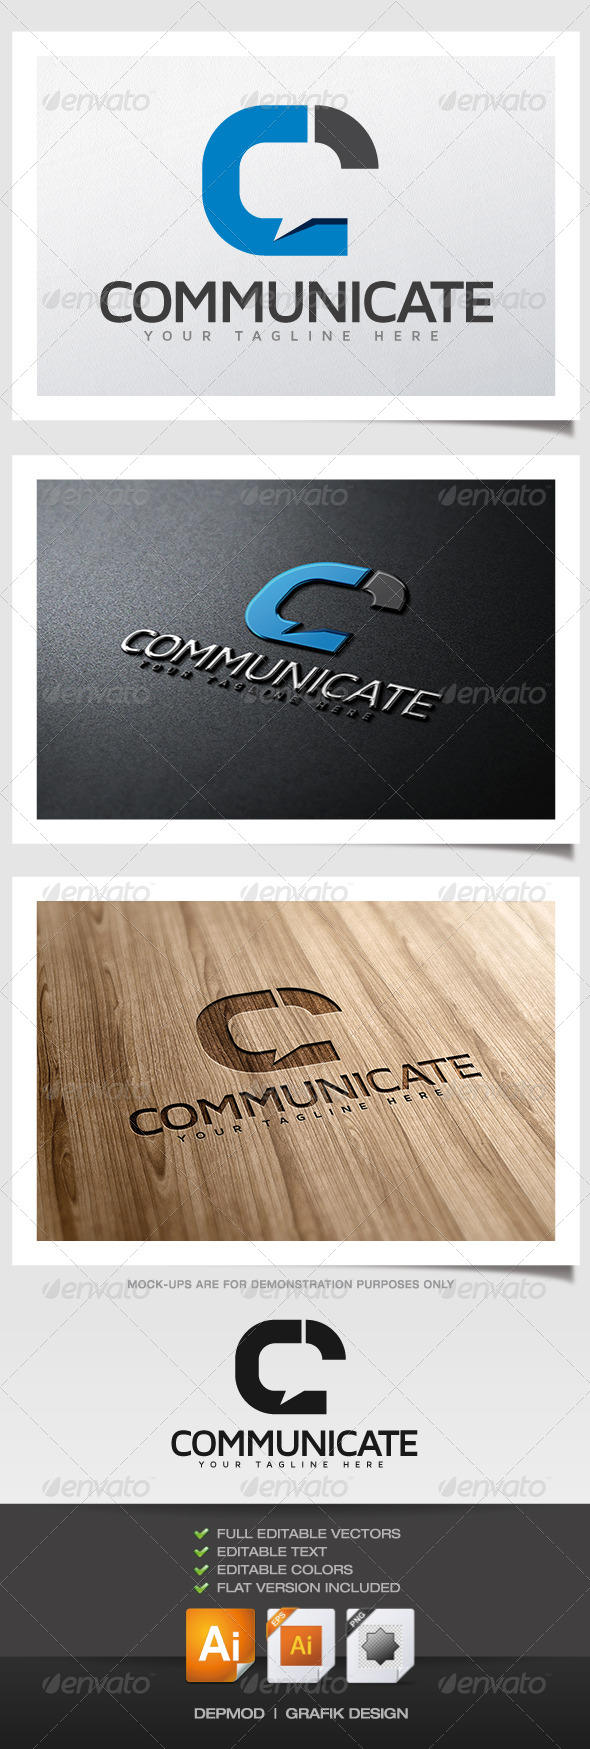 GraphicRiver Communicate Logo 5896480